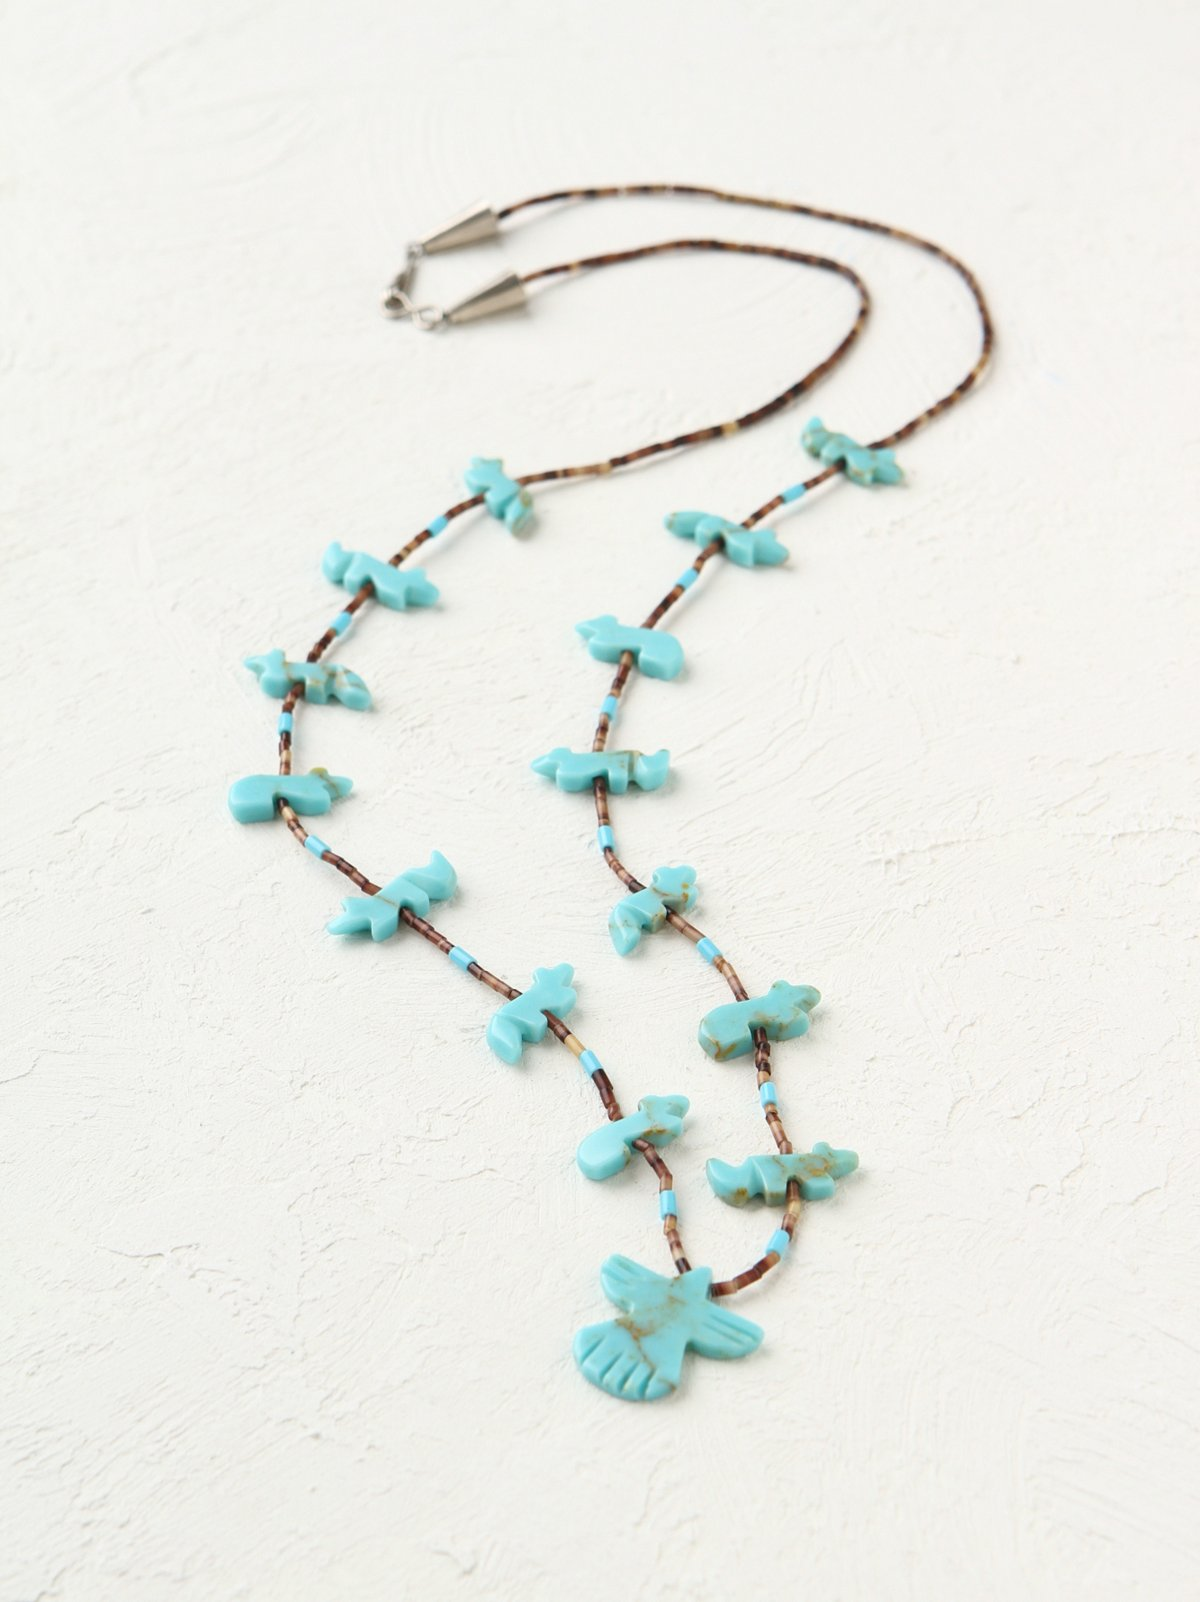 Vintage Delicate Bird Bead Necklace